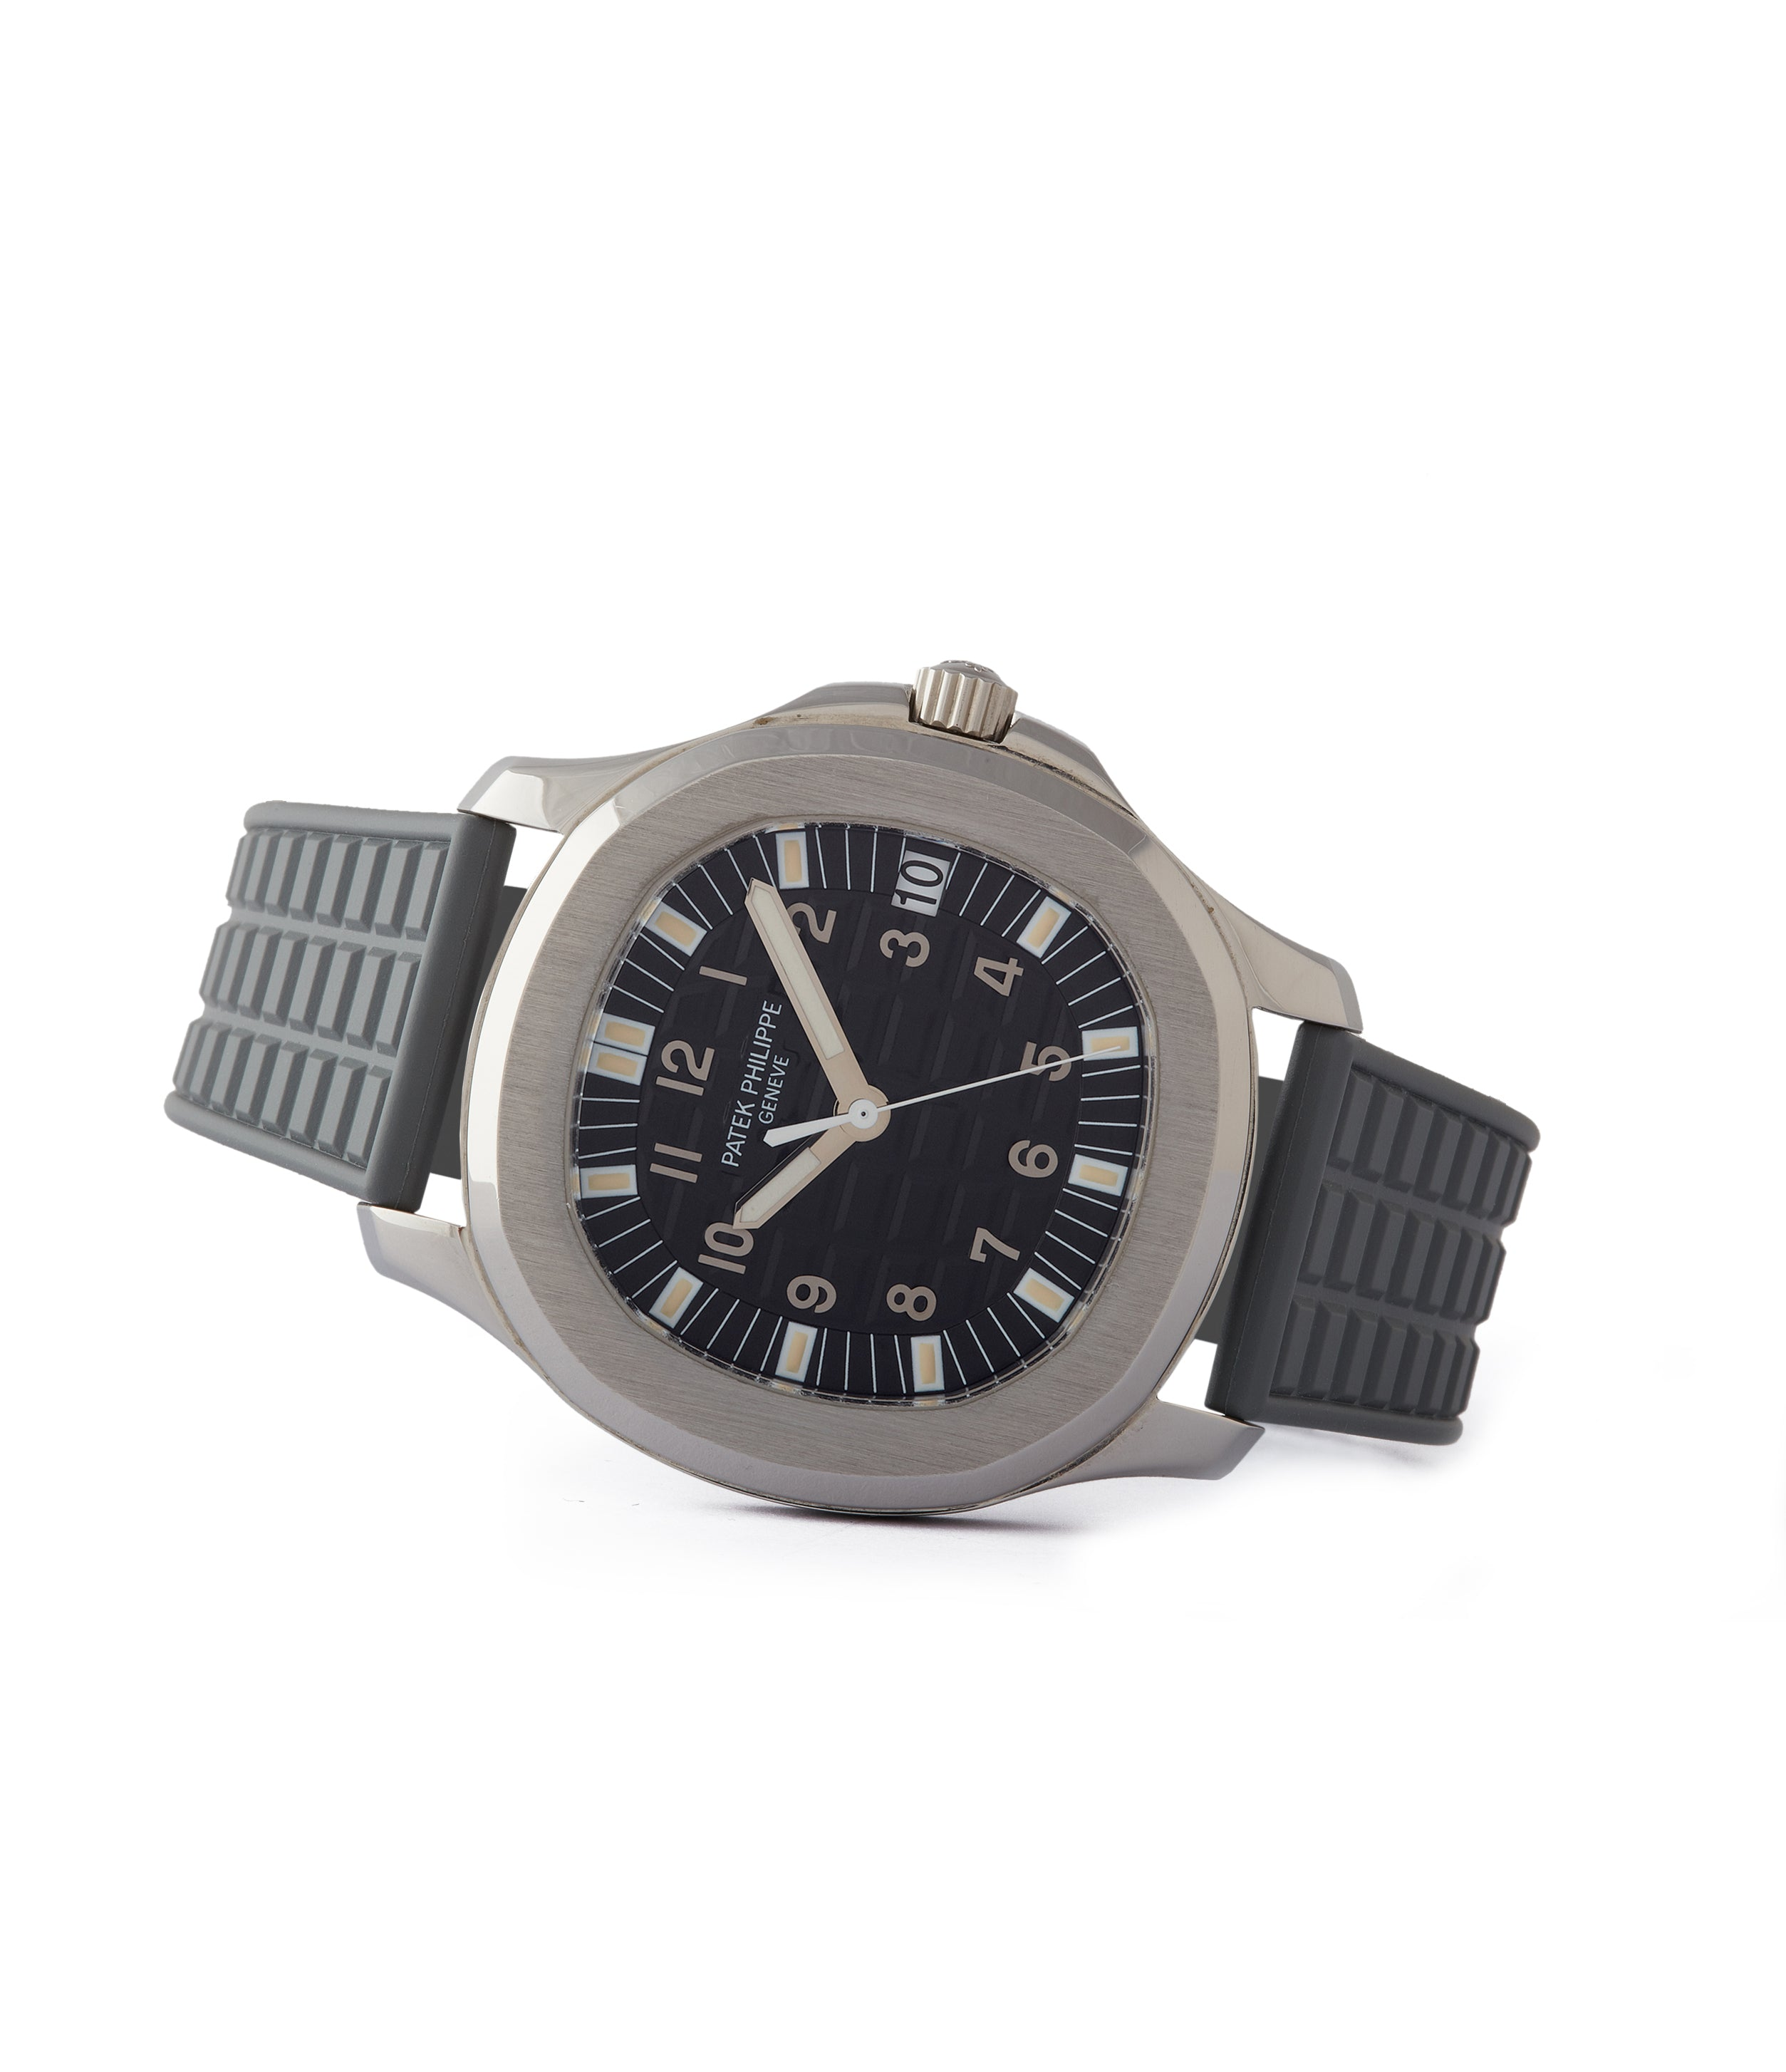 side-shot steel Patek Philippe Aquanaut 5065/1A-010 Jumbo sport pre-owned watch for sale online at A Collected Man London UK specialist of rare watches